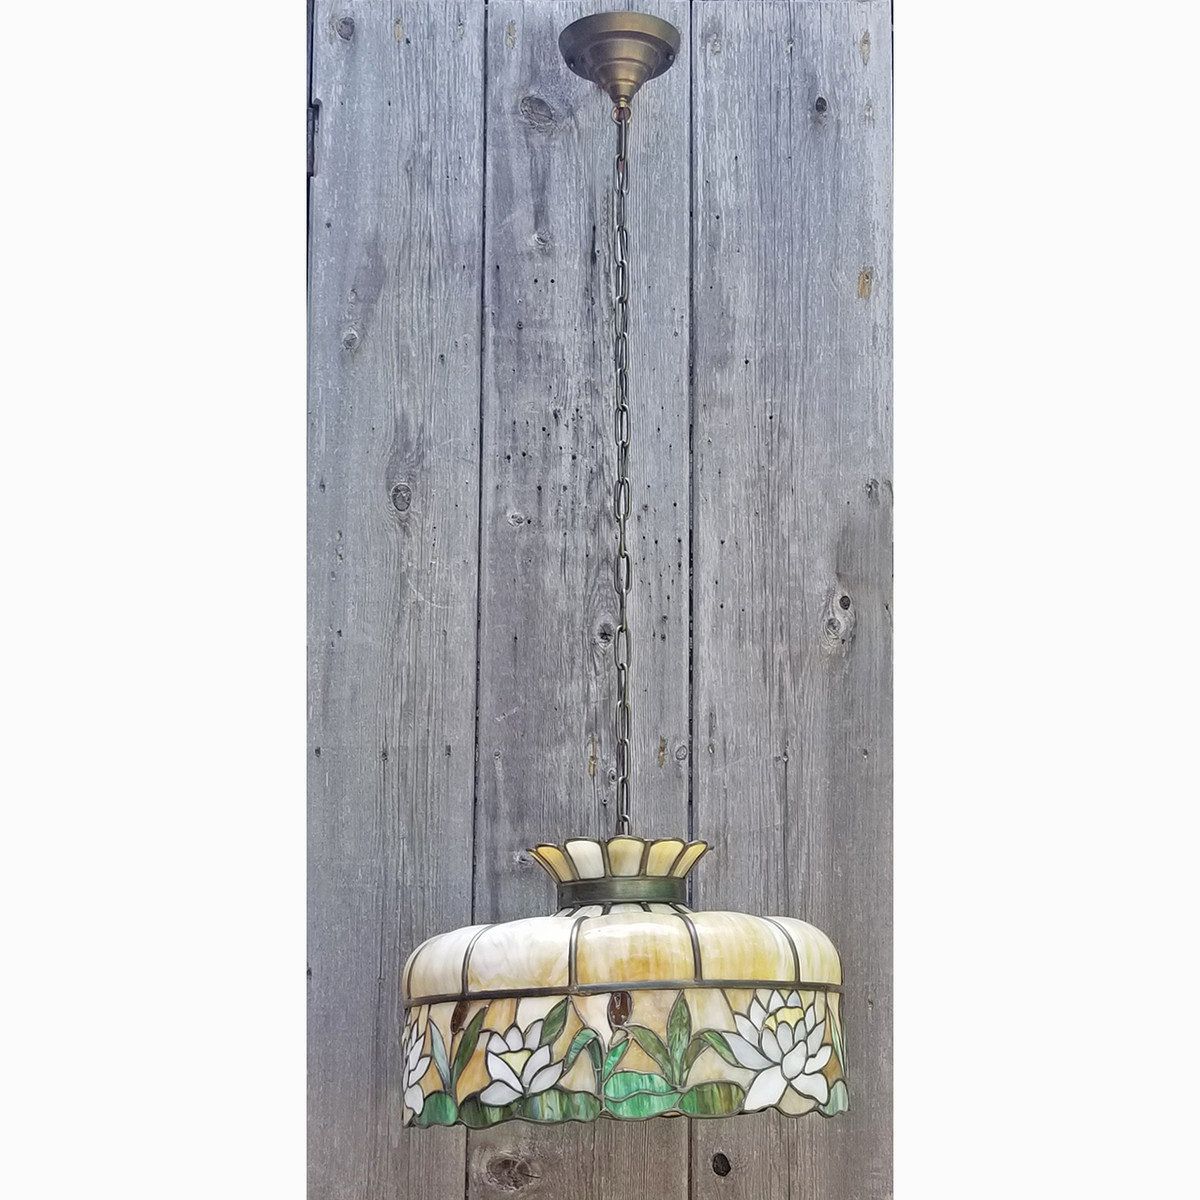 L19153 - Antique Leaded Glass Lamp Shade